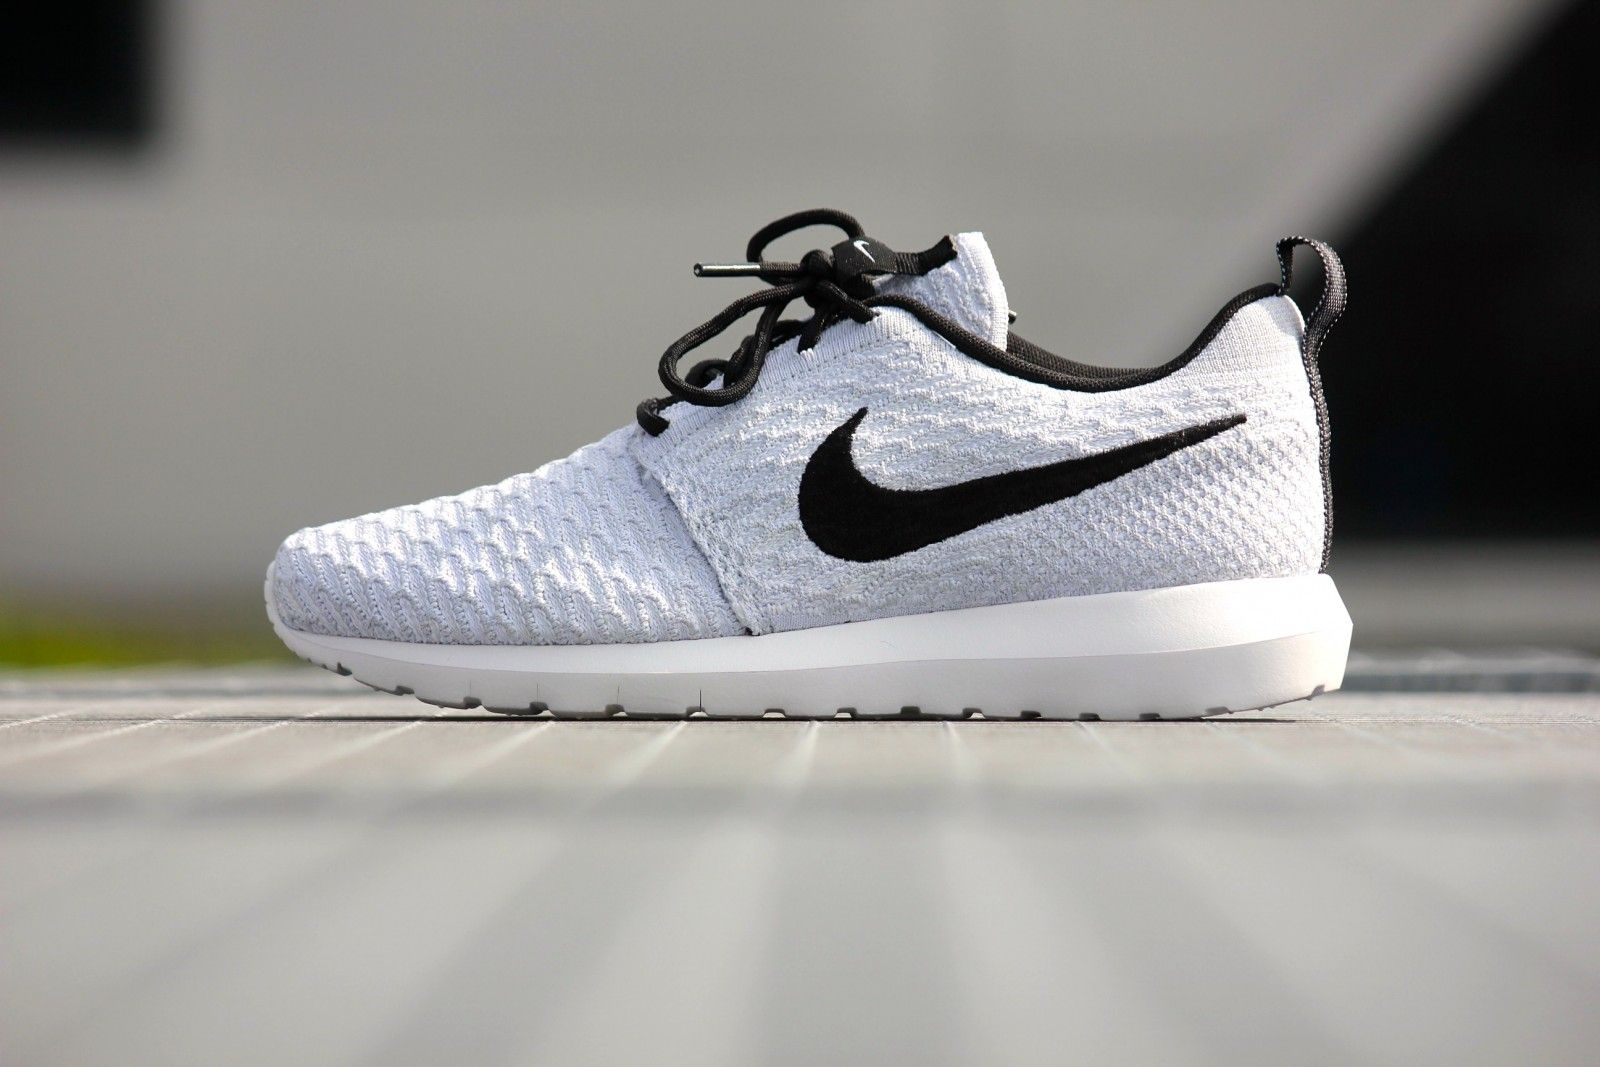 nike roshe run flyknit black/dark grey/white painted